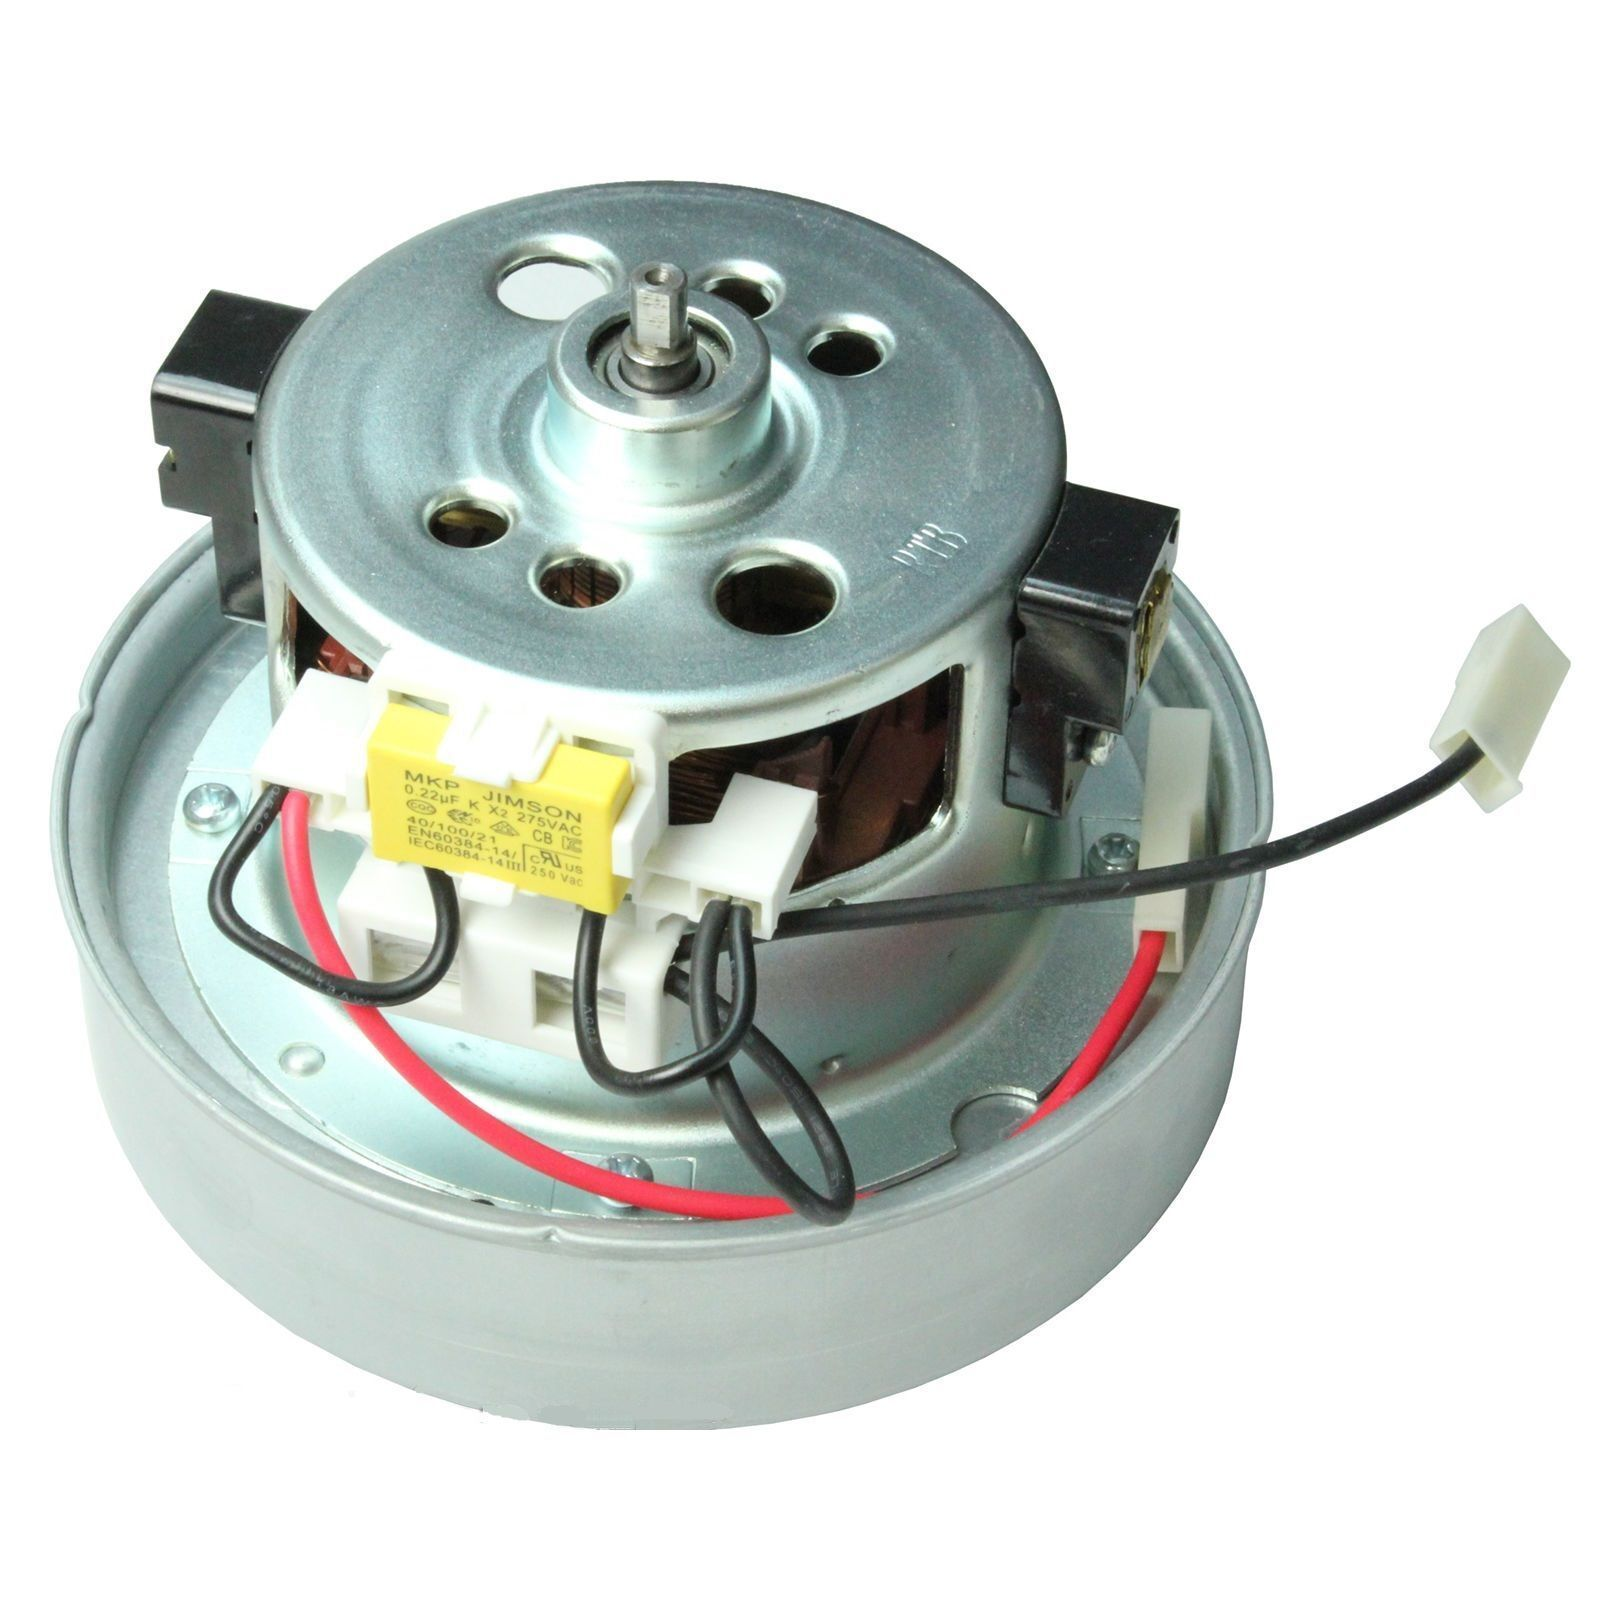 Dyson dc23 dc23t2 dc32 animal replacement motor ebay for Dyson motor replacement cost